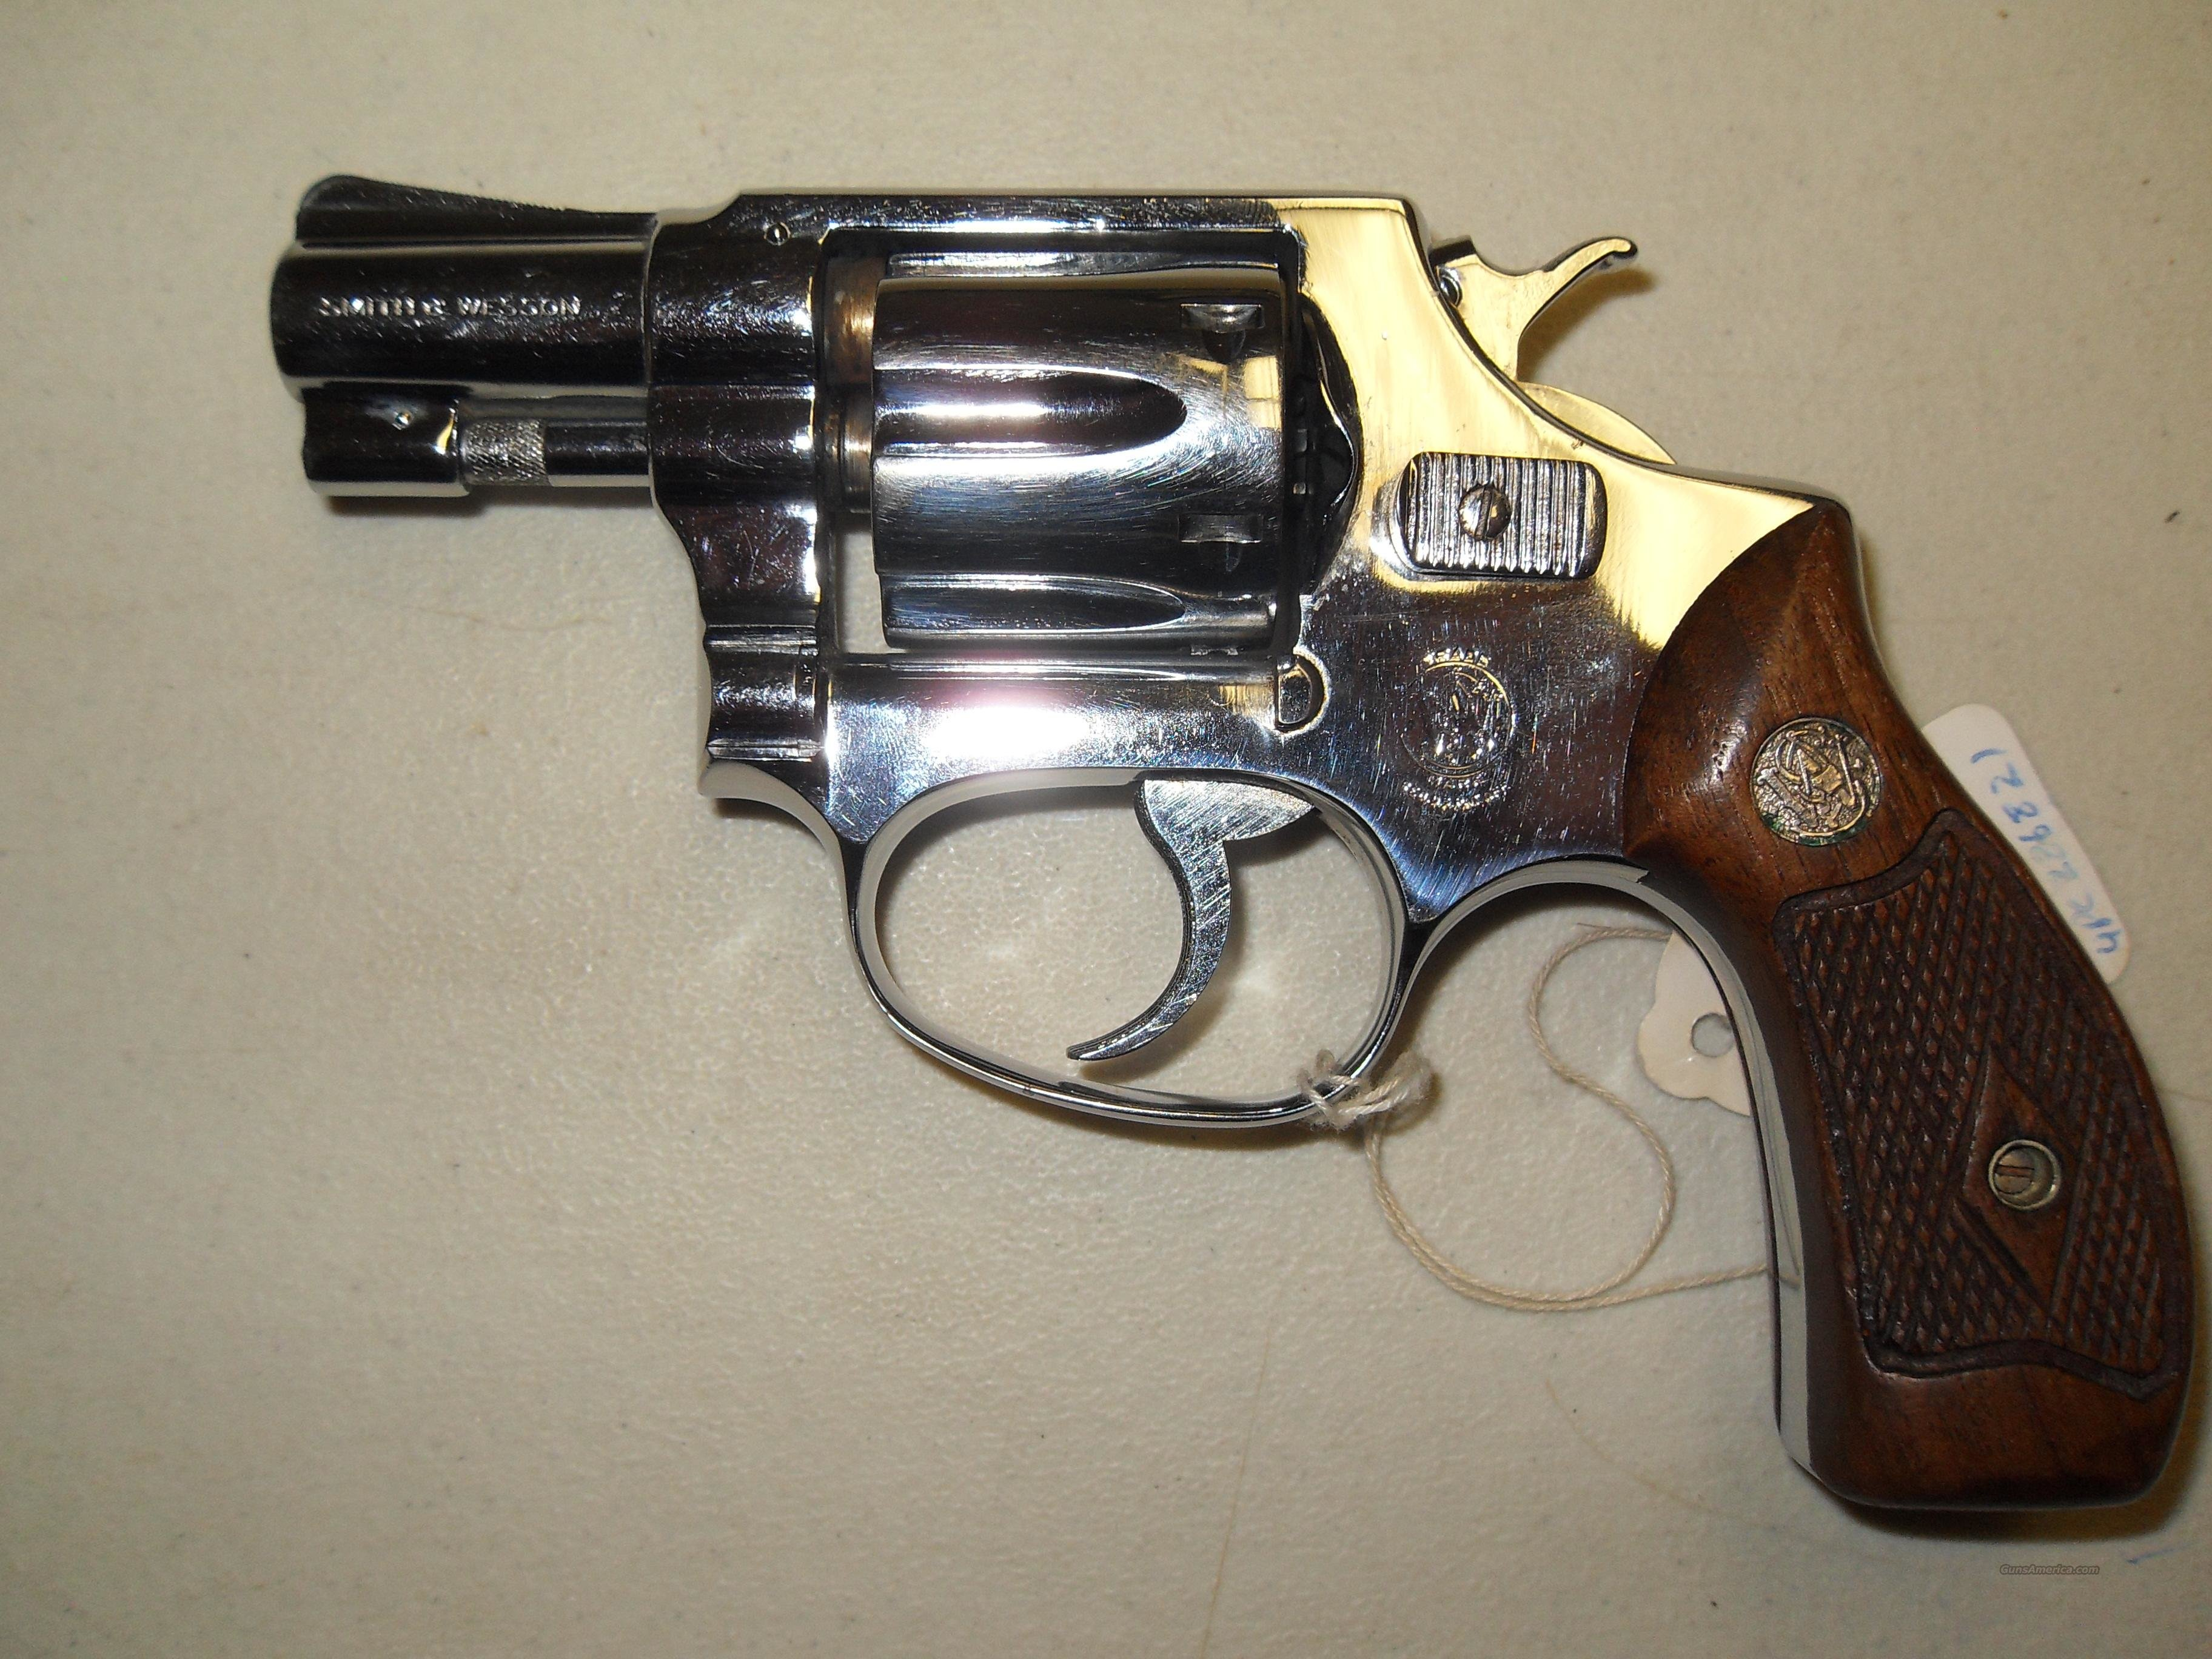 Smith & Wesson 32 Hand Ejector Pre Model 30  Guns > Pistols > Smith & Wesson Revolvers > Pocket Pistols